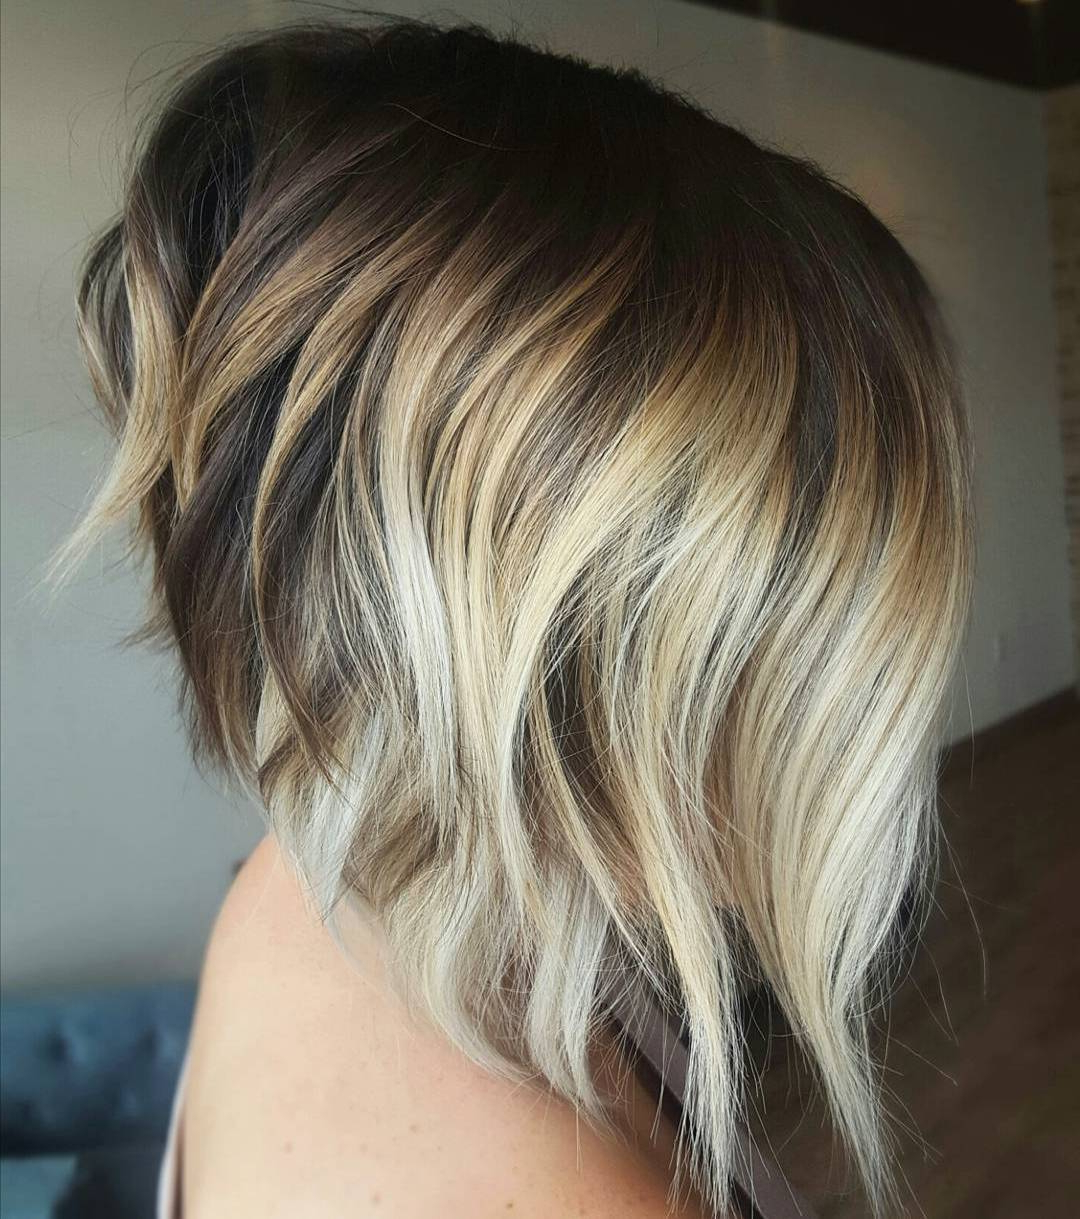 50 Choppy Bobs Too Damn Good Not To Copy – Hair Adviser For Choppy Blonde Bob Hairstyles With Messy Waves (View 13 of 20)